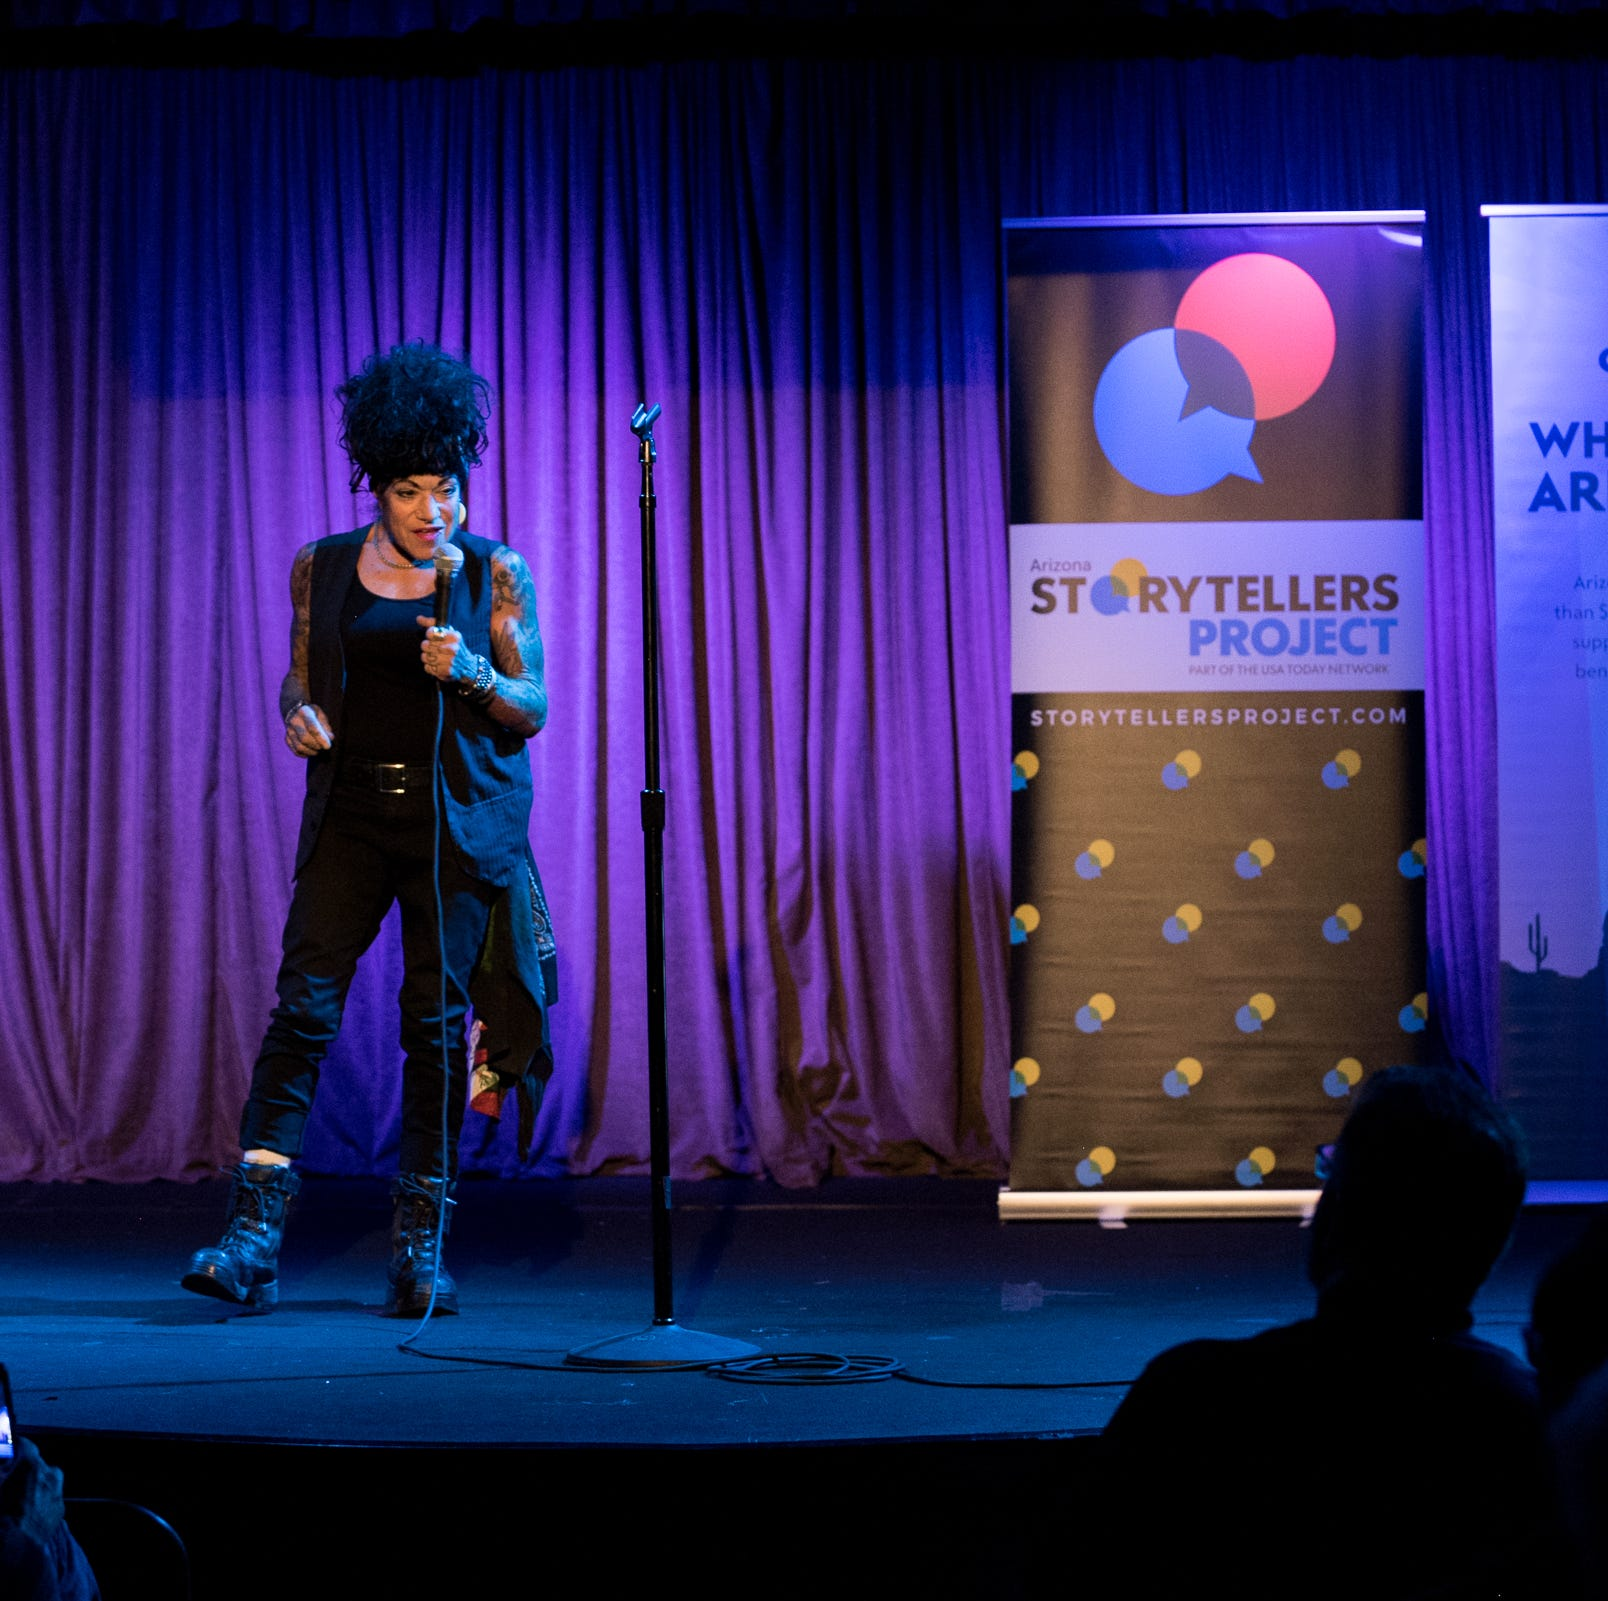 Themes, dates, tickets for 2019 Arizona Storytellers shows